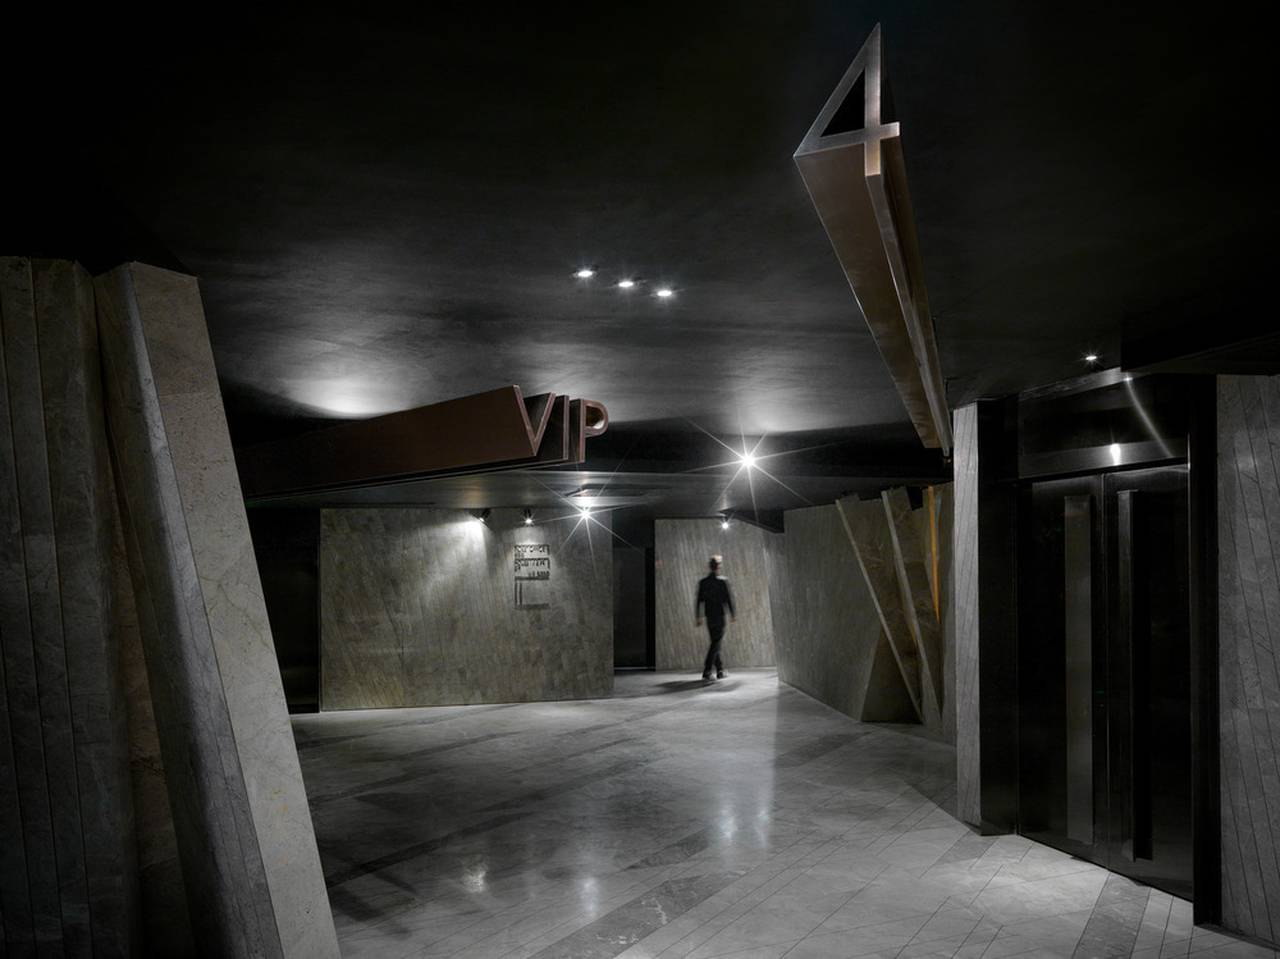 Walking through the corridor to reach the theatre, you'll find yourself walking in another form of meteor shower, which is transformed to flat rectangular shapes made out of stone, looking as if they are growing from the ground : Photo credit © One Plus Partnership Limited & Jonathan Leijonhufvud